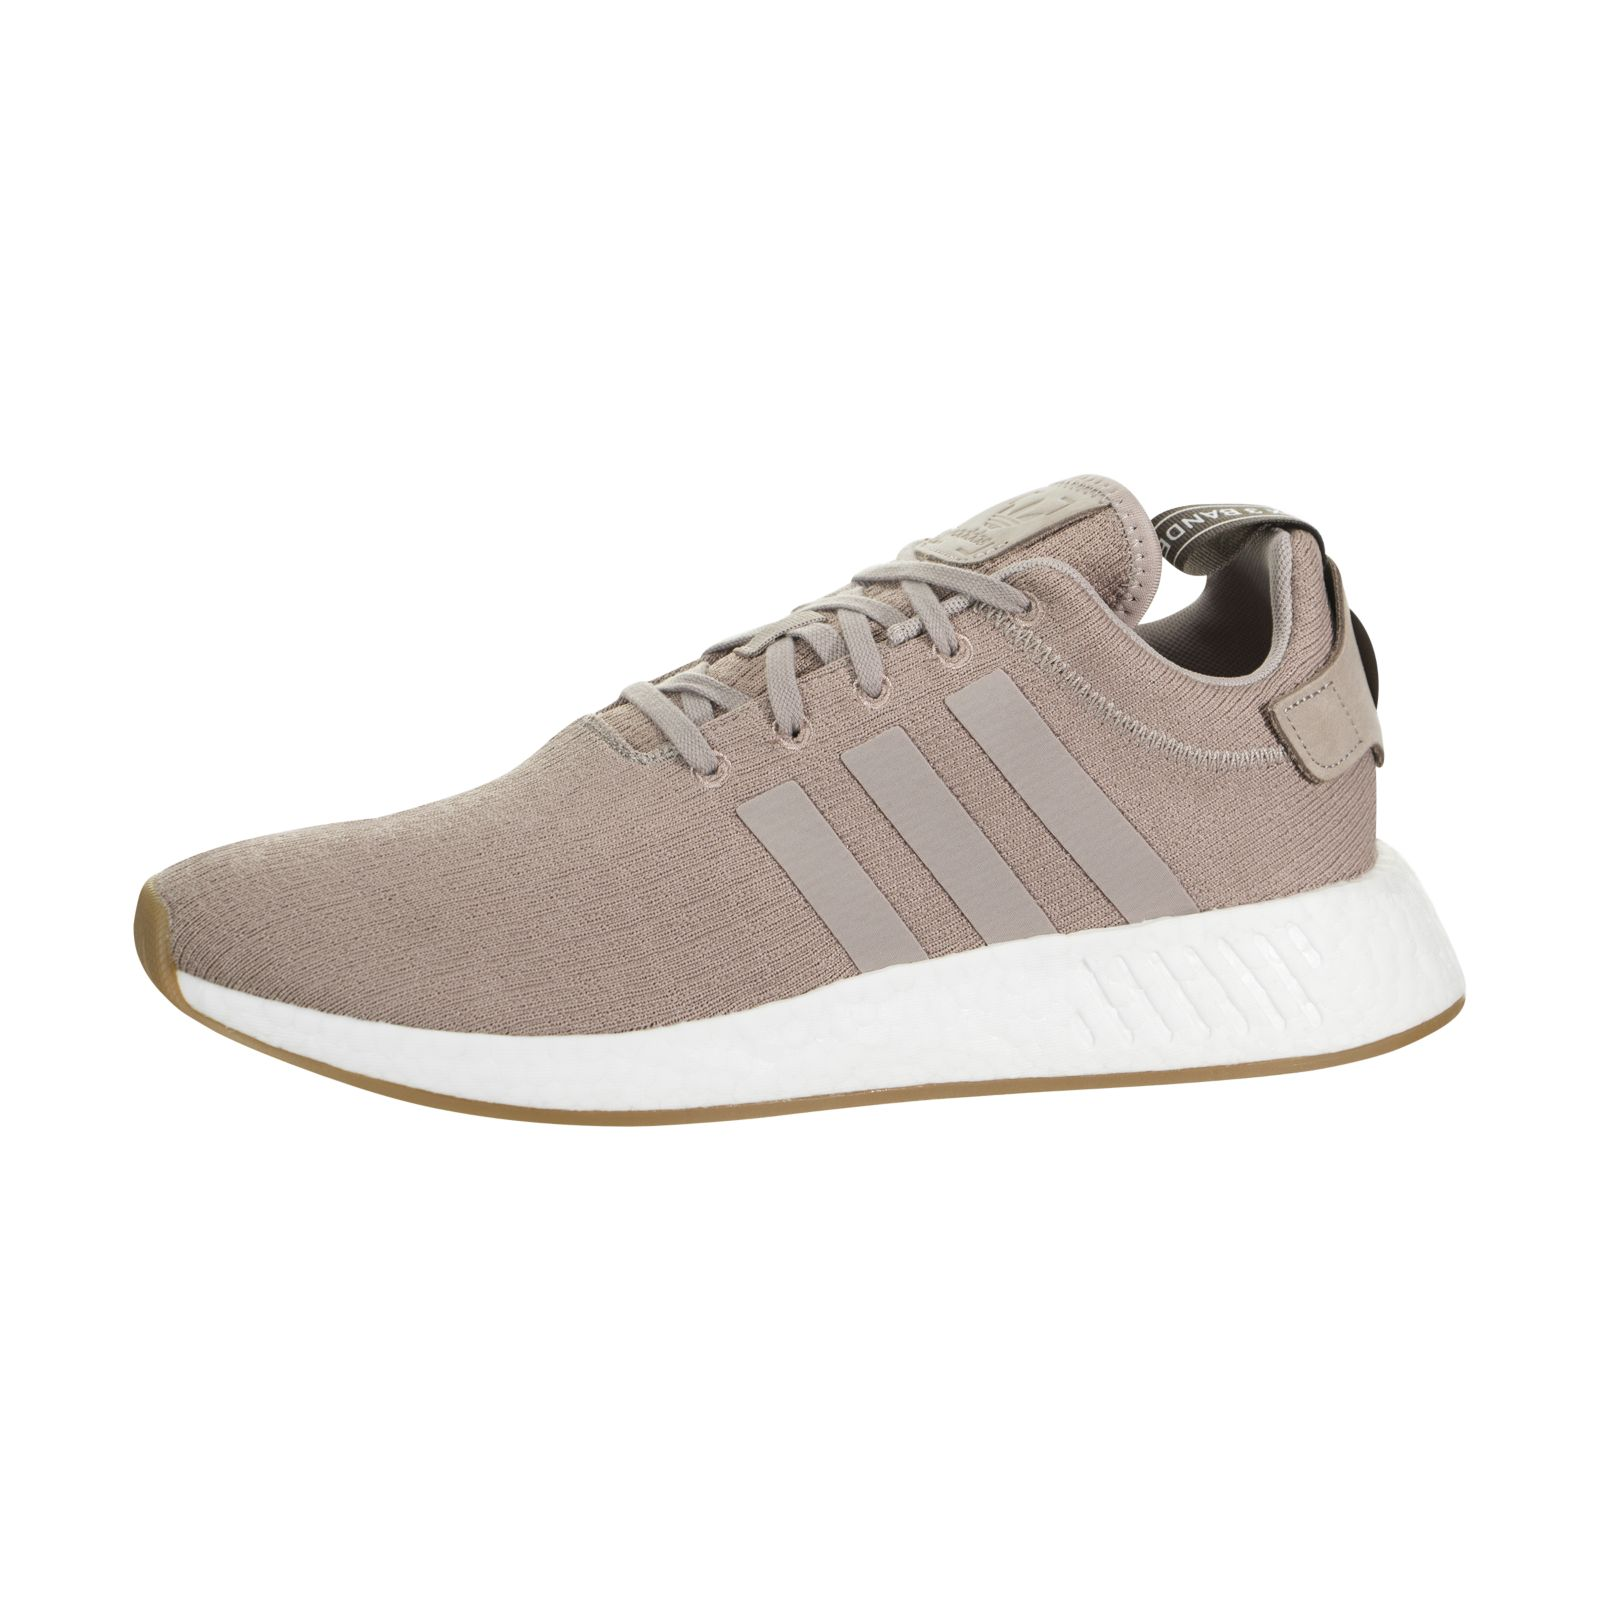 premium selection 32017 1a4a3 Details about Adidas NMD_R2 cq2399